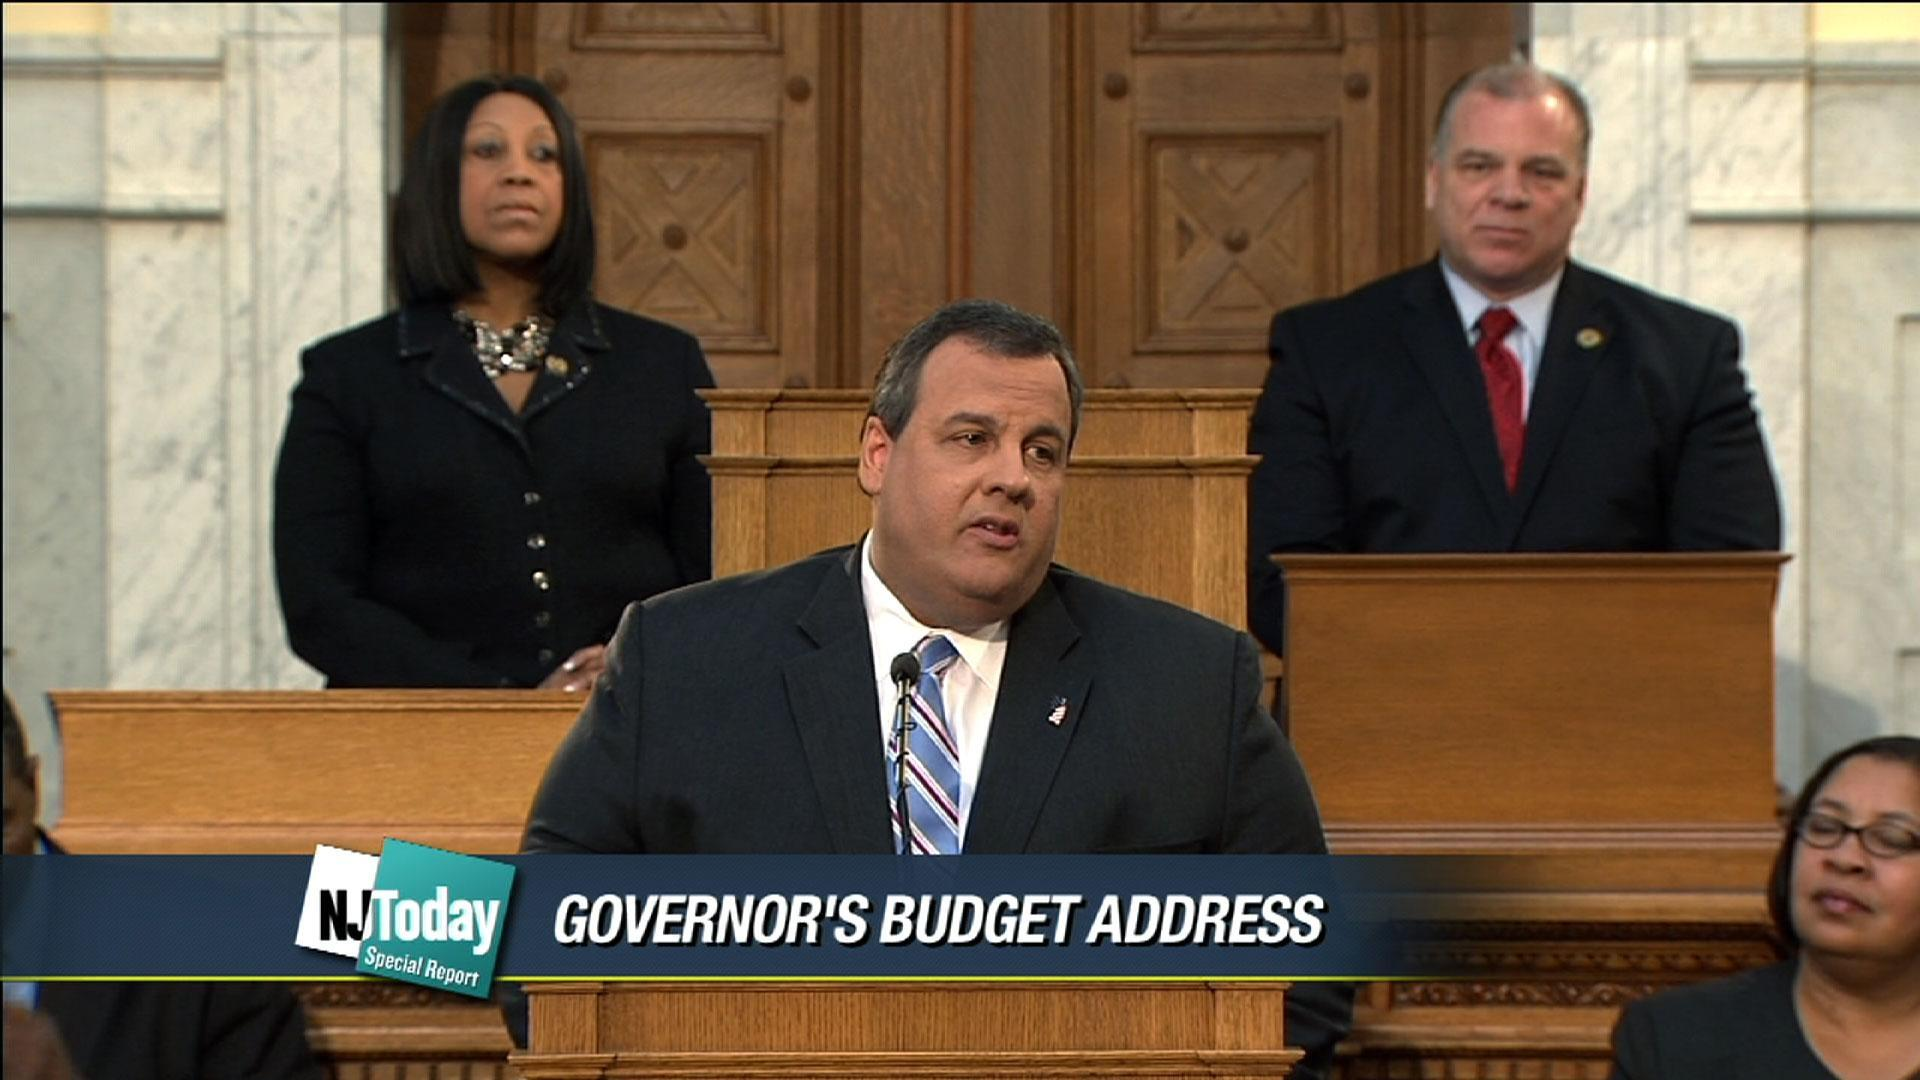 Chris Christie Resume Governor Christie Delivers 2013 Budget Address Njtv News